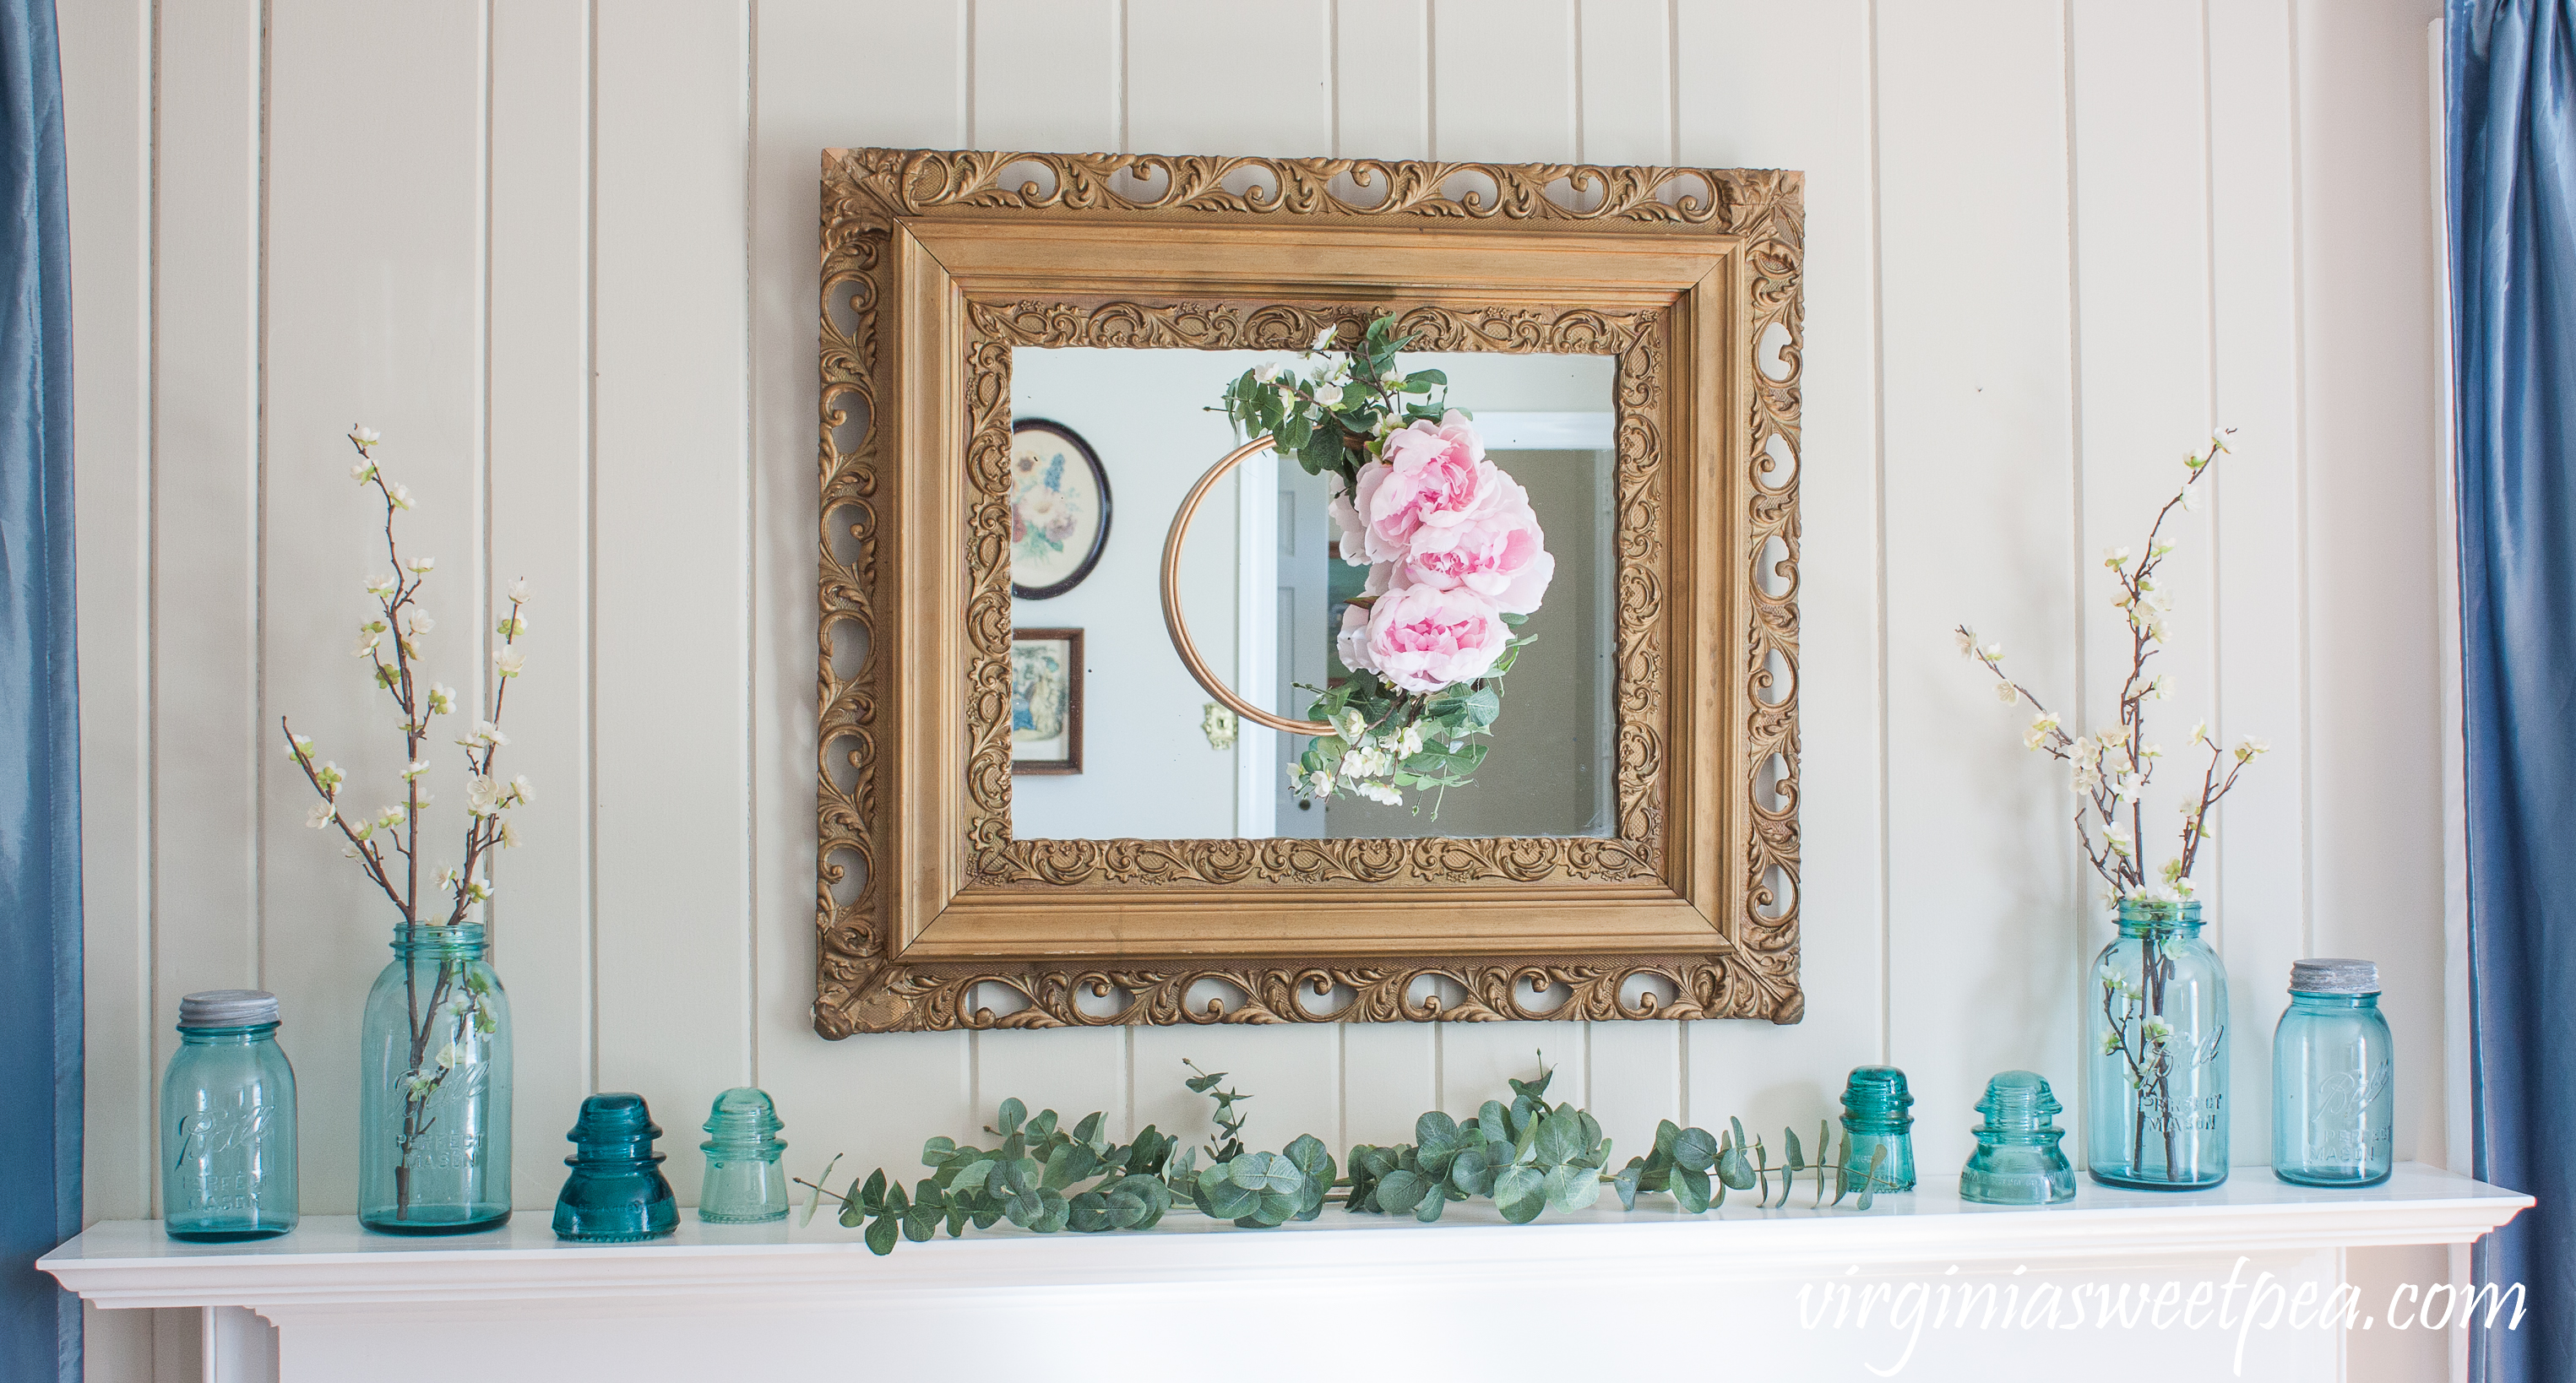 Spring Mantel and DIY Embroidery Hoop Wreath - A mantel is decorated for spring with vintage blue Ball jars and insulators. #spring #springdecor #springmantel #wreath #springwreath #vintage #balljars #vintagedecor